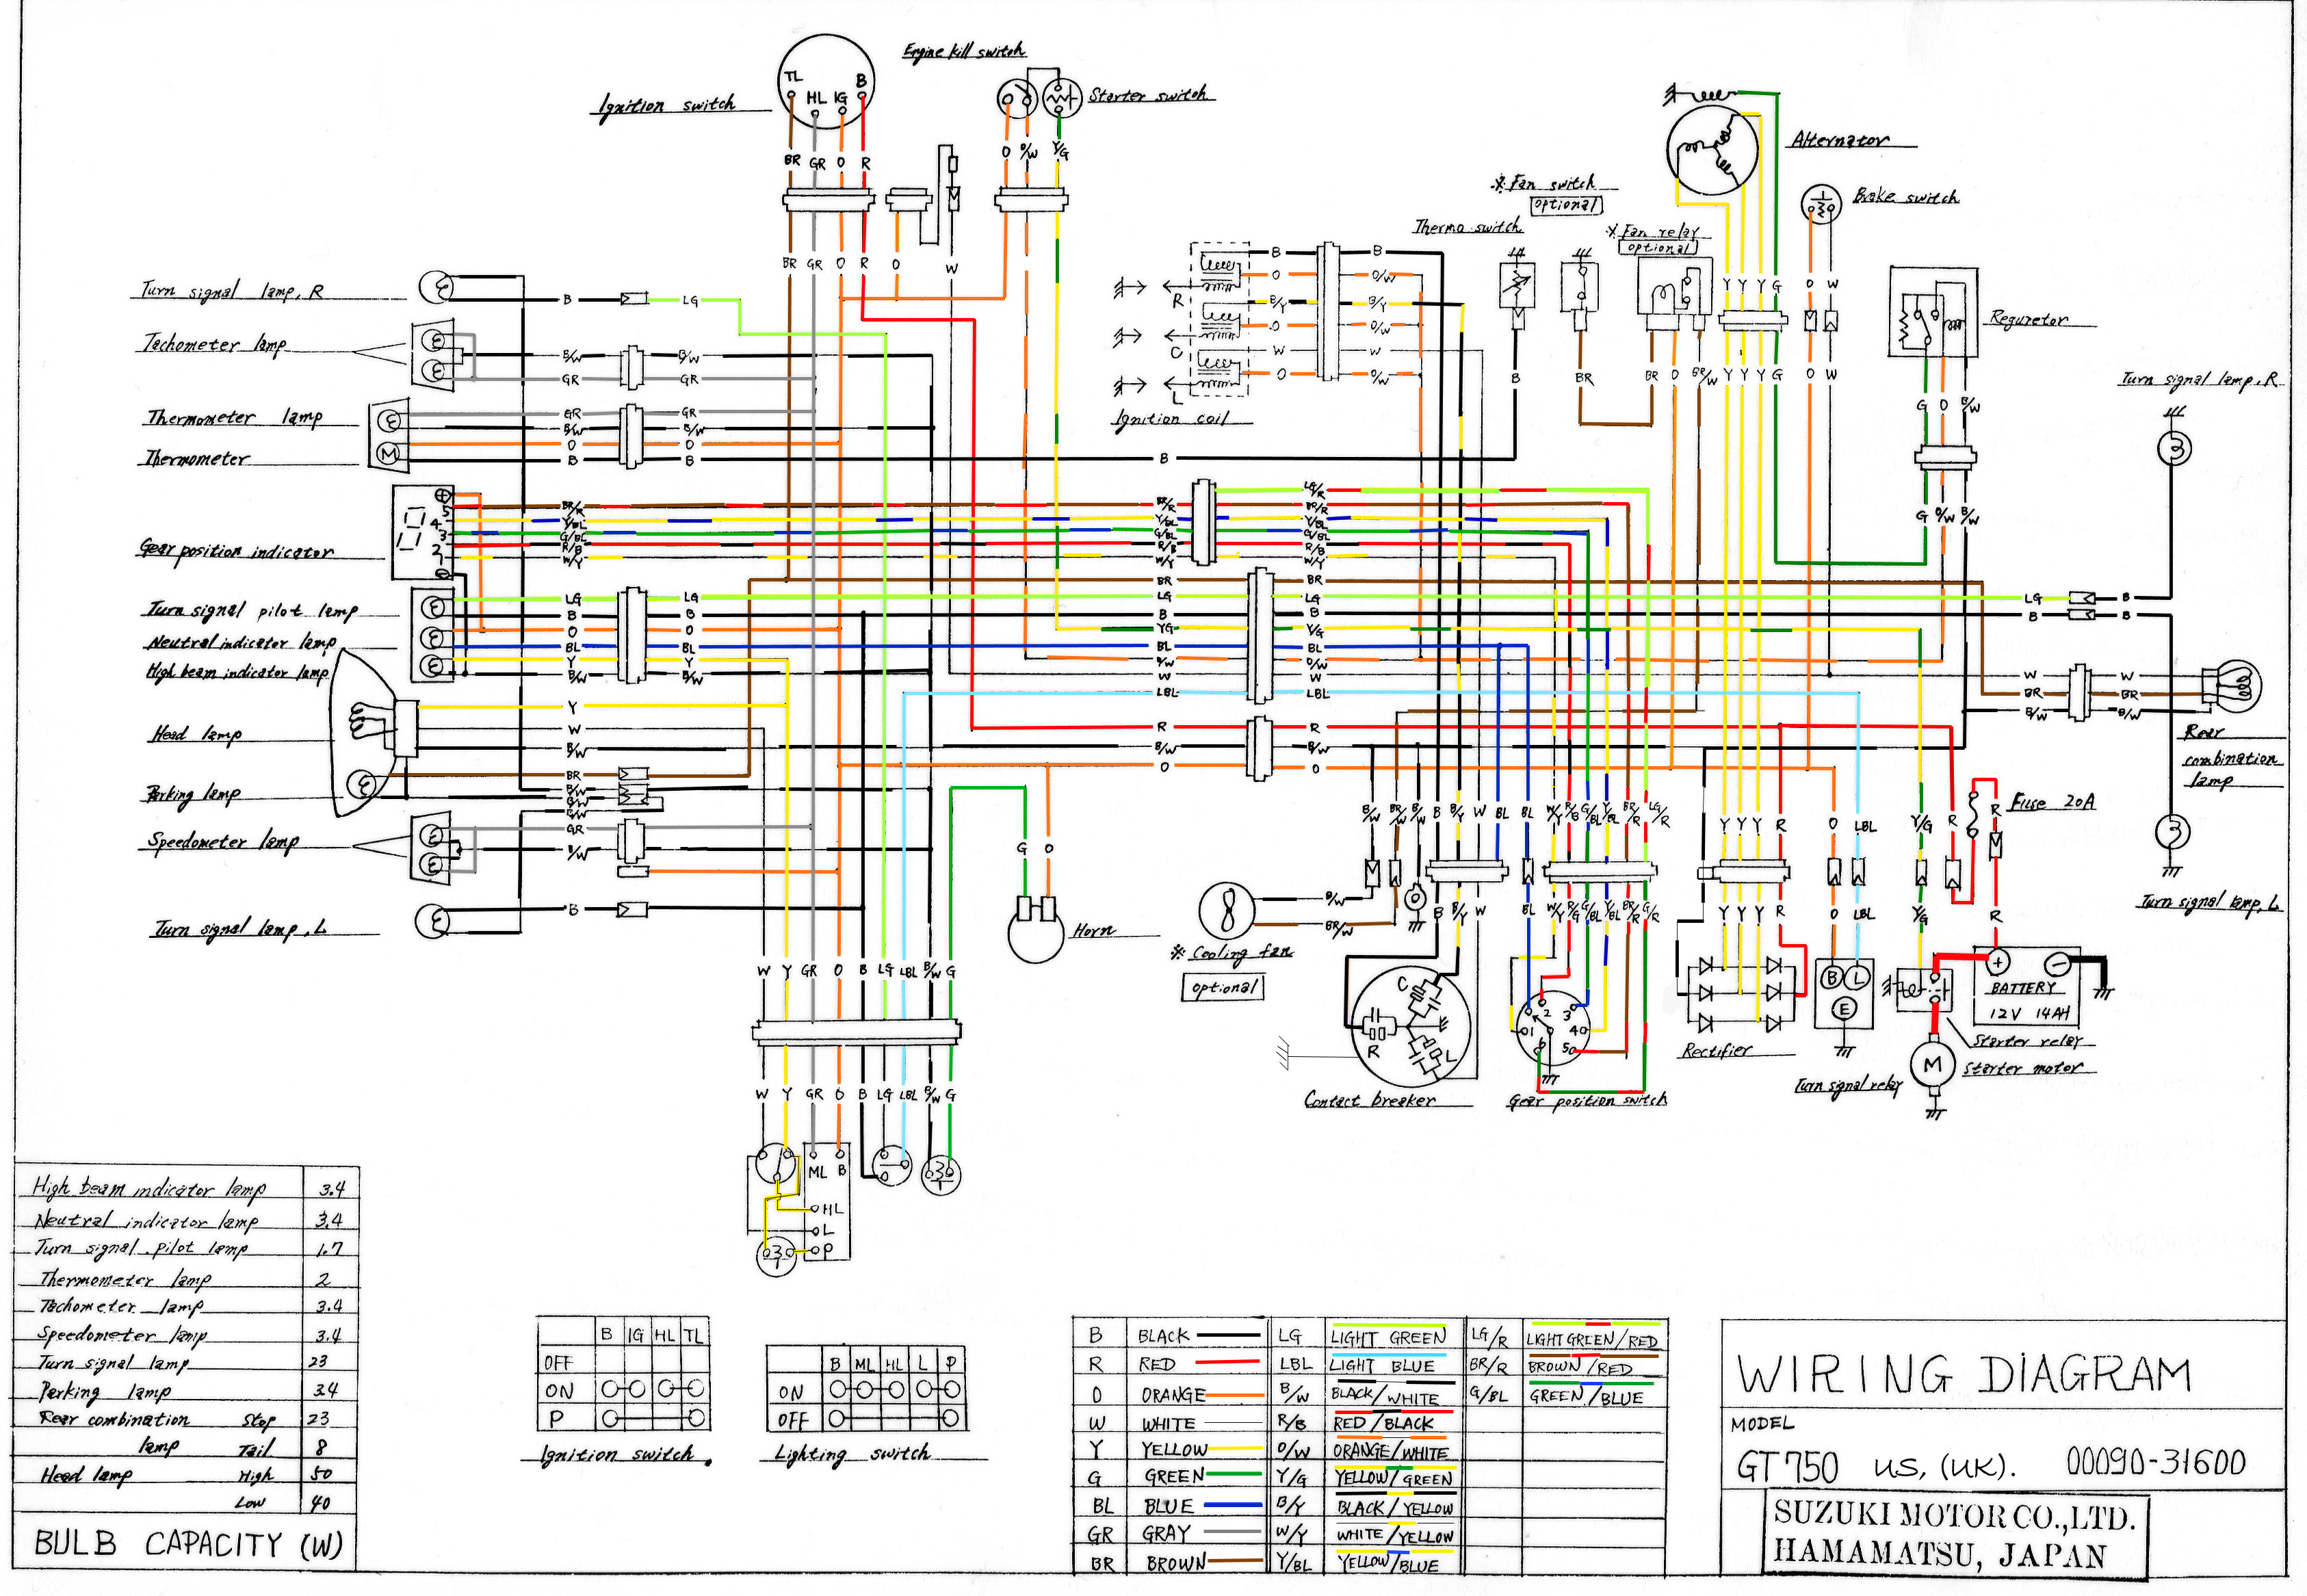 Suzuki Gt Wiring Diagram Wiring Diagram - Honda cb750 wiring diagram